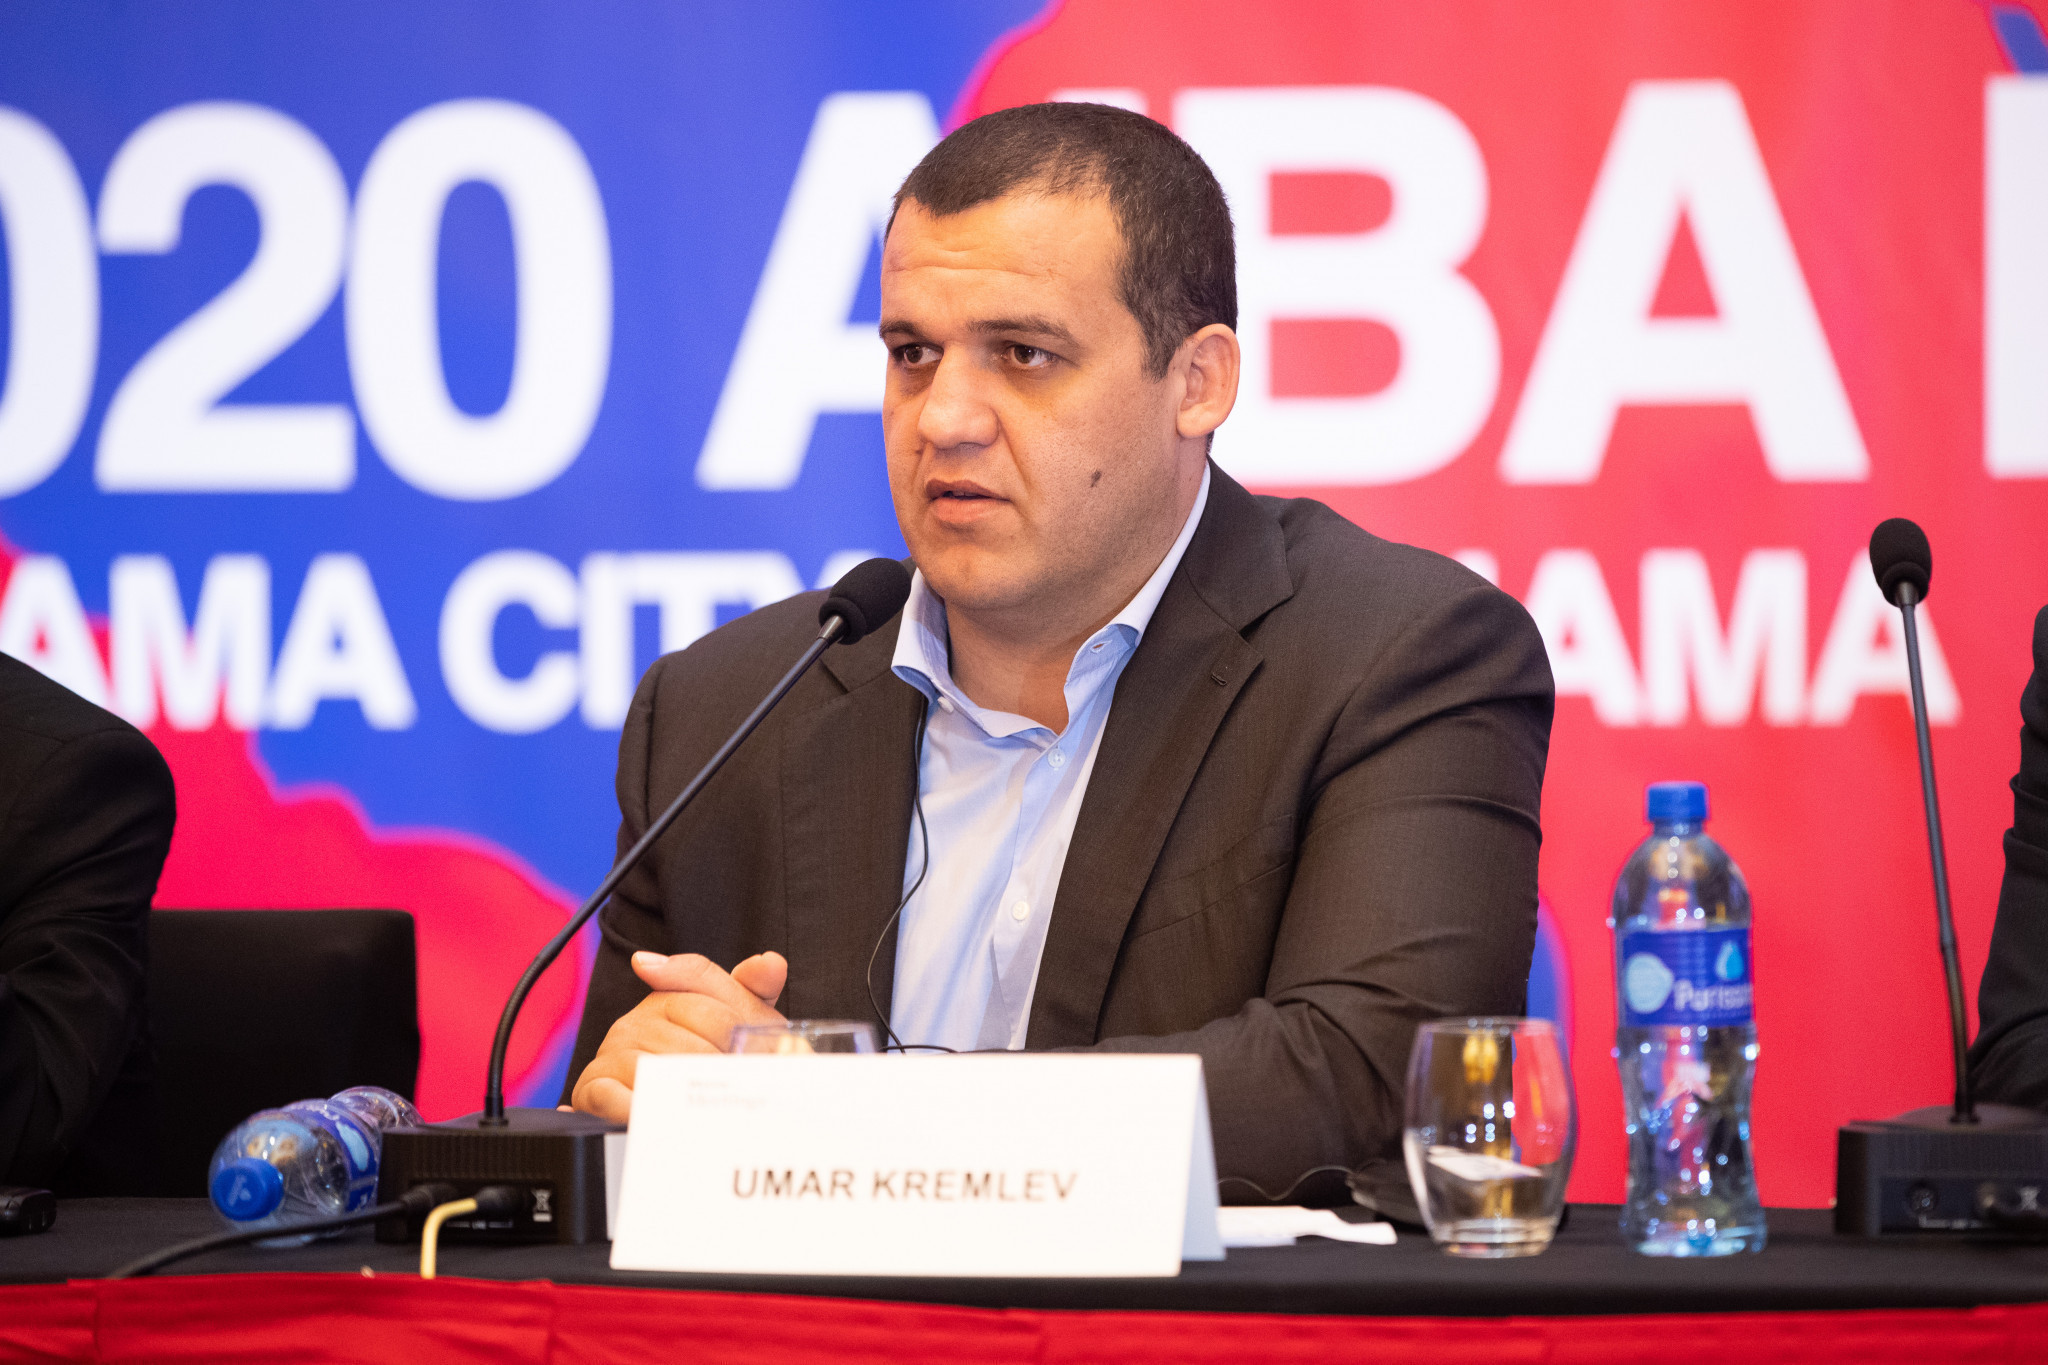 Richard McLaren has been hired to investigate alleged corruption at AIBA by its new President Umar Kremlev ©AIBA